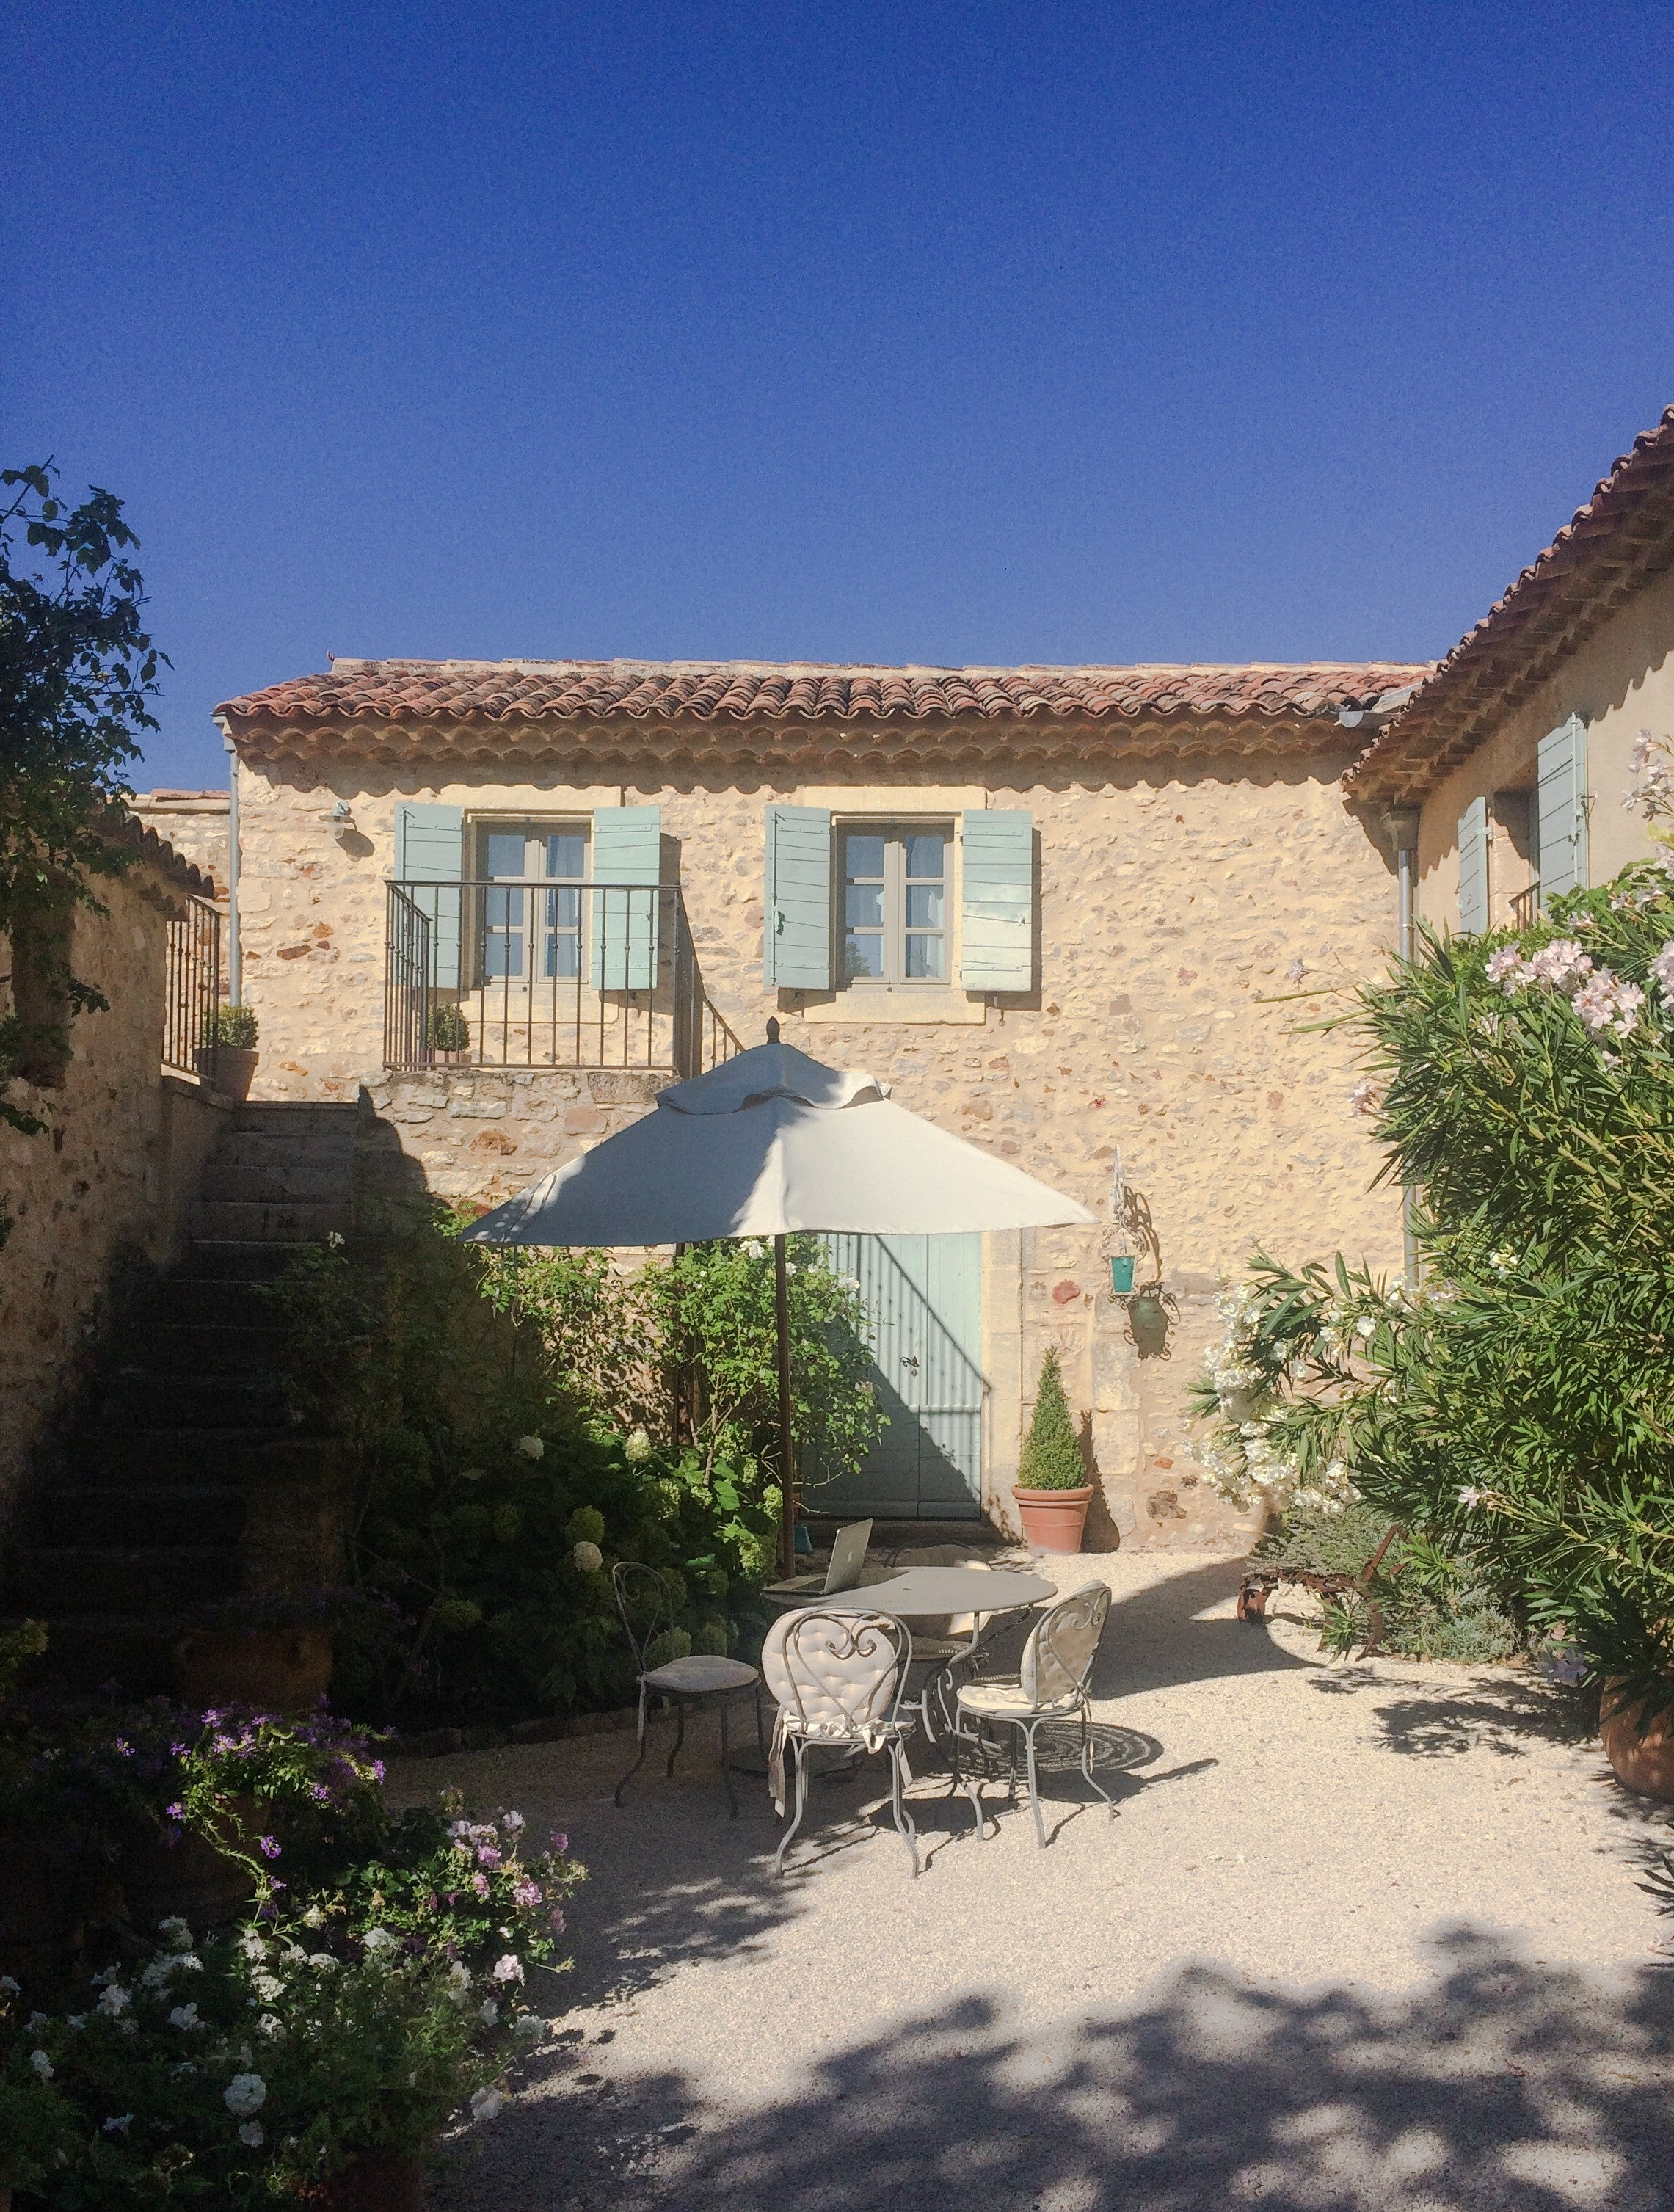 Travel Notes | From Picturesque Provence